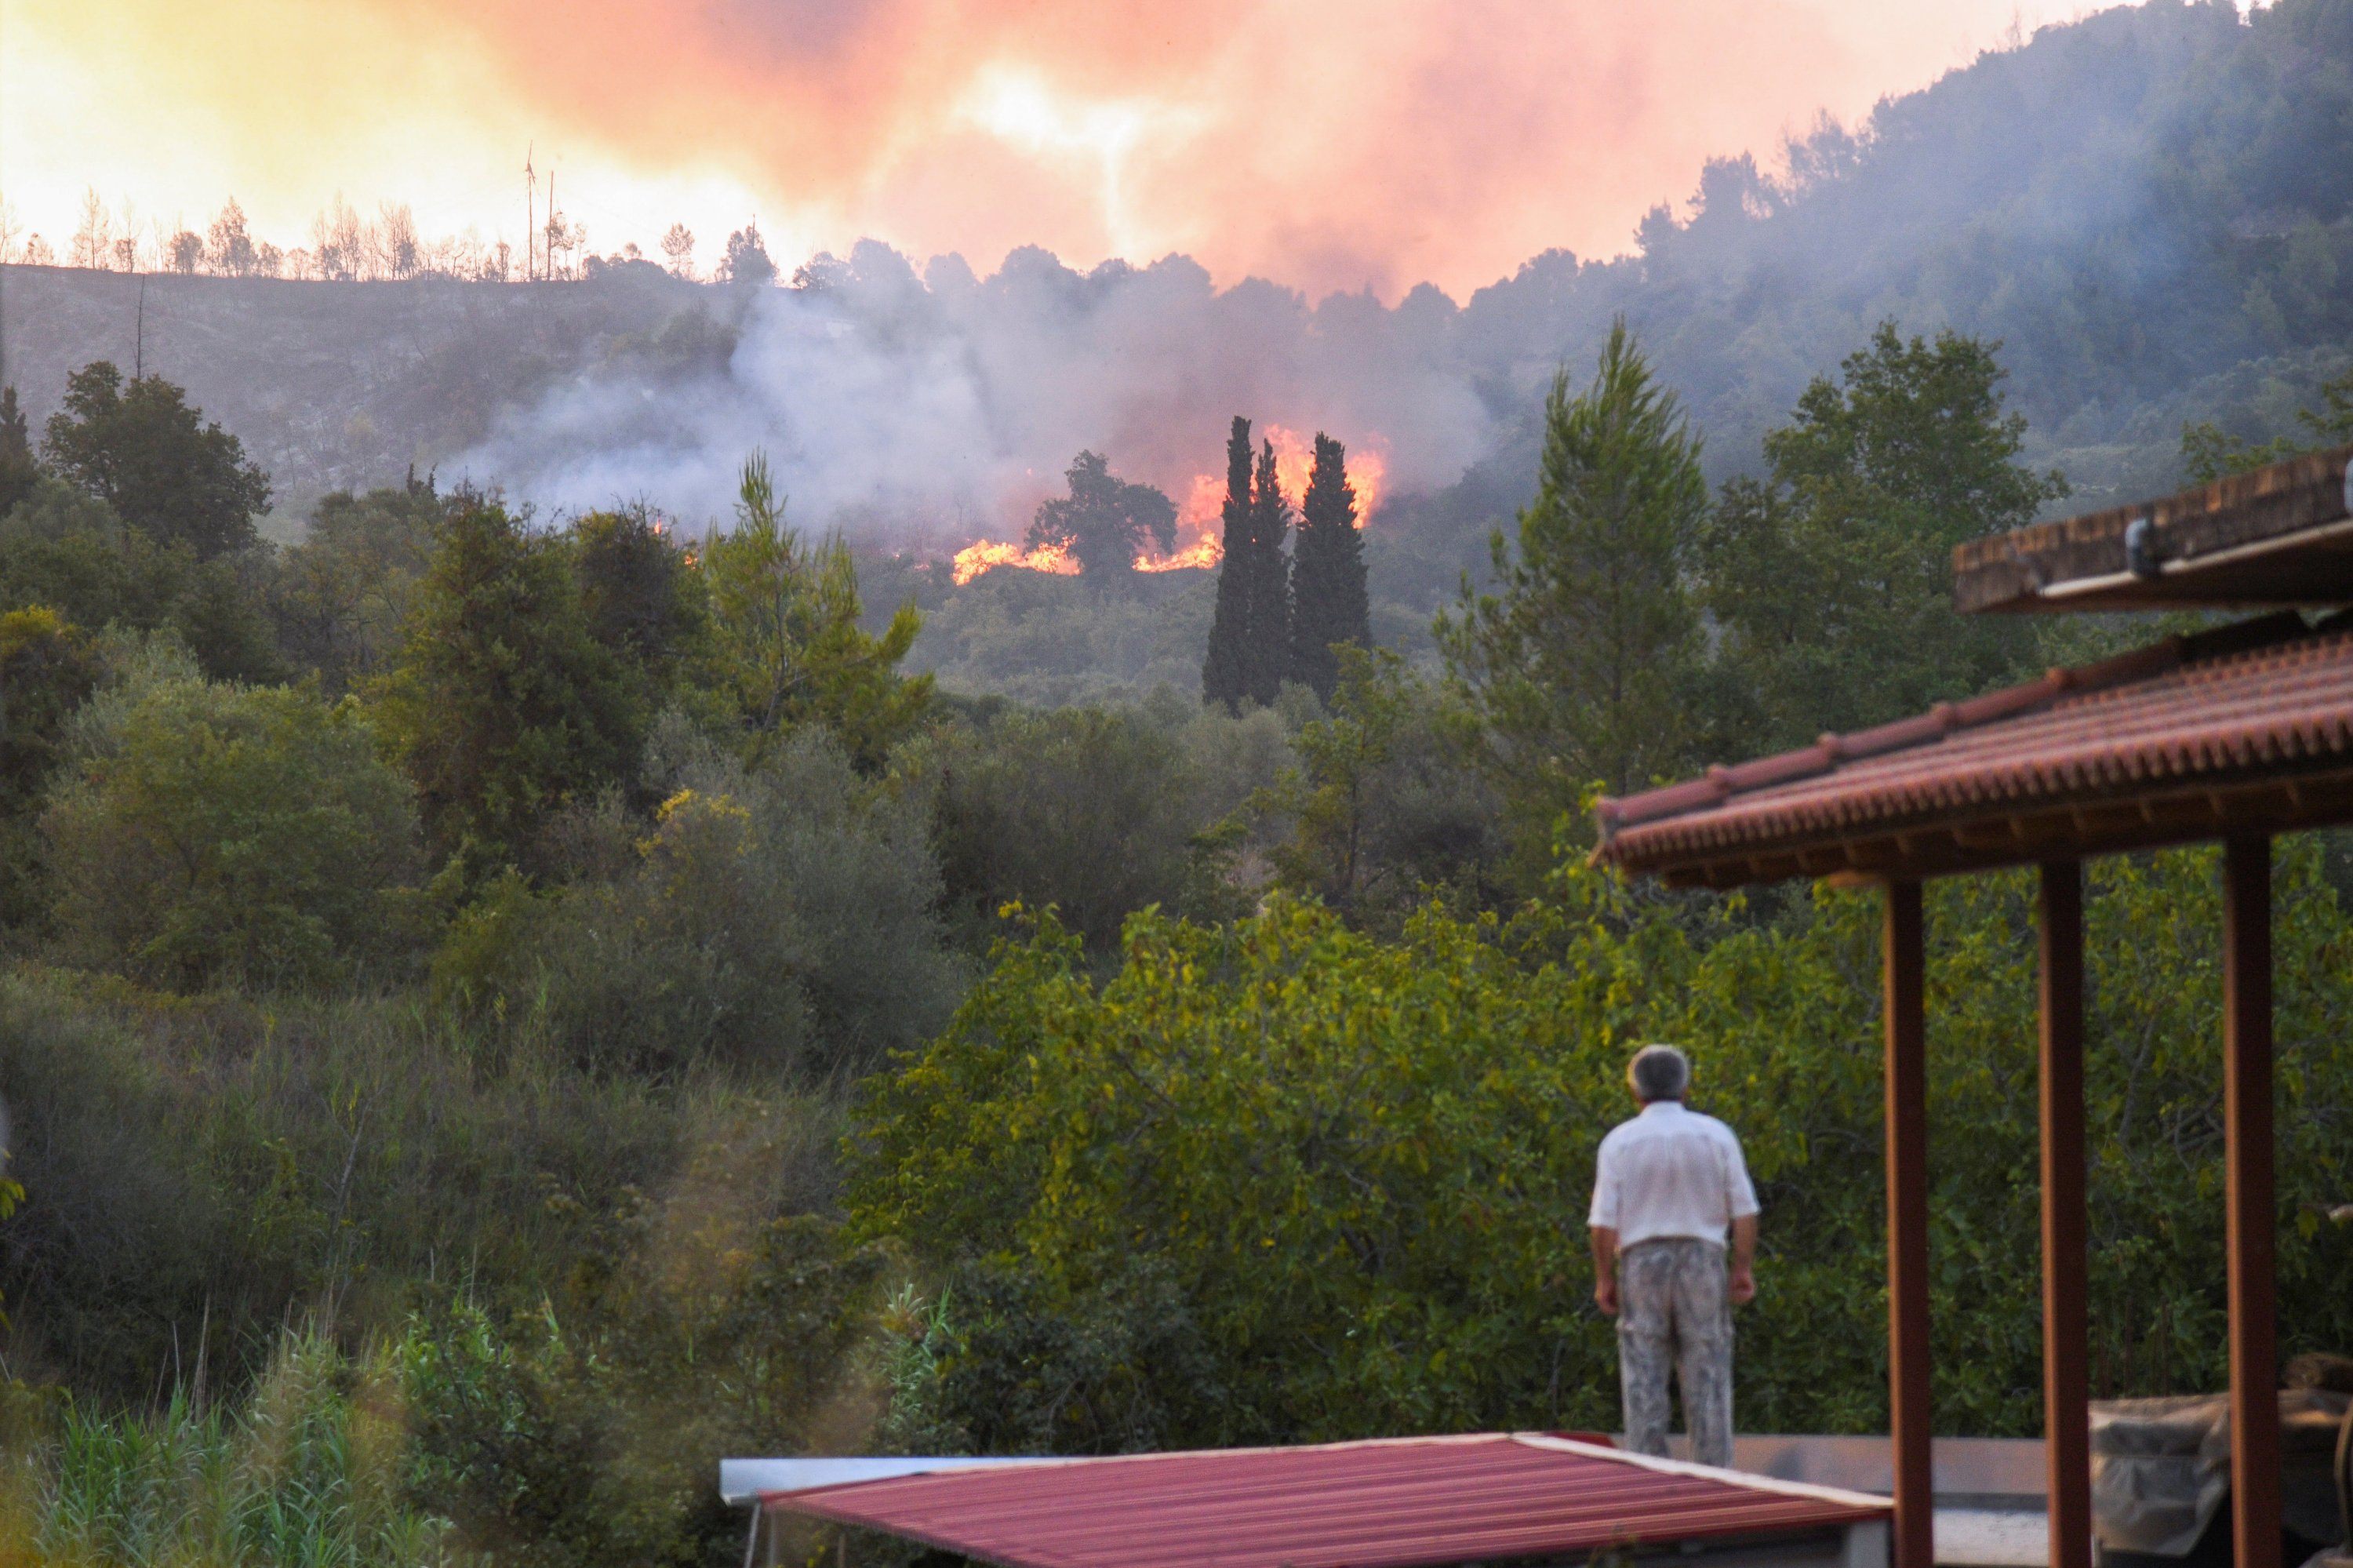 Flames rise as a wildfire burns near the site of ancient Olympia, Greece, August 5, 2021. (Reuters Photo)